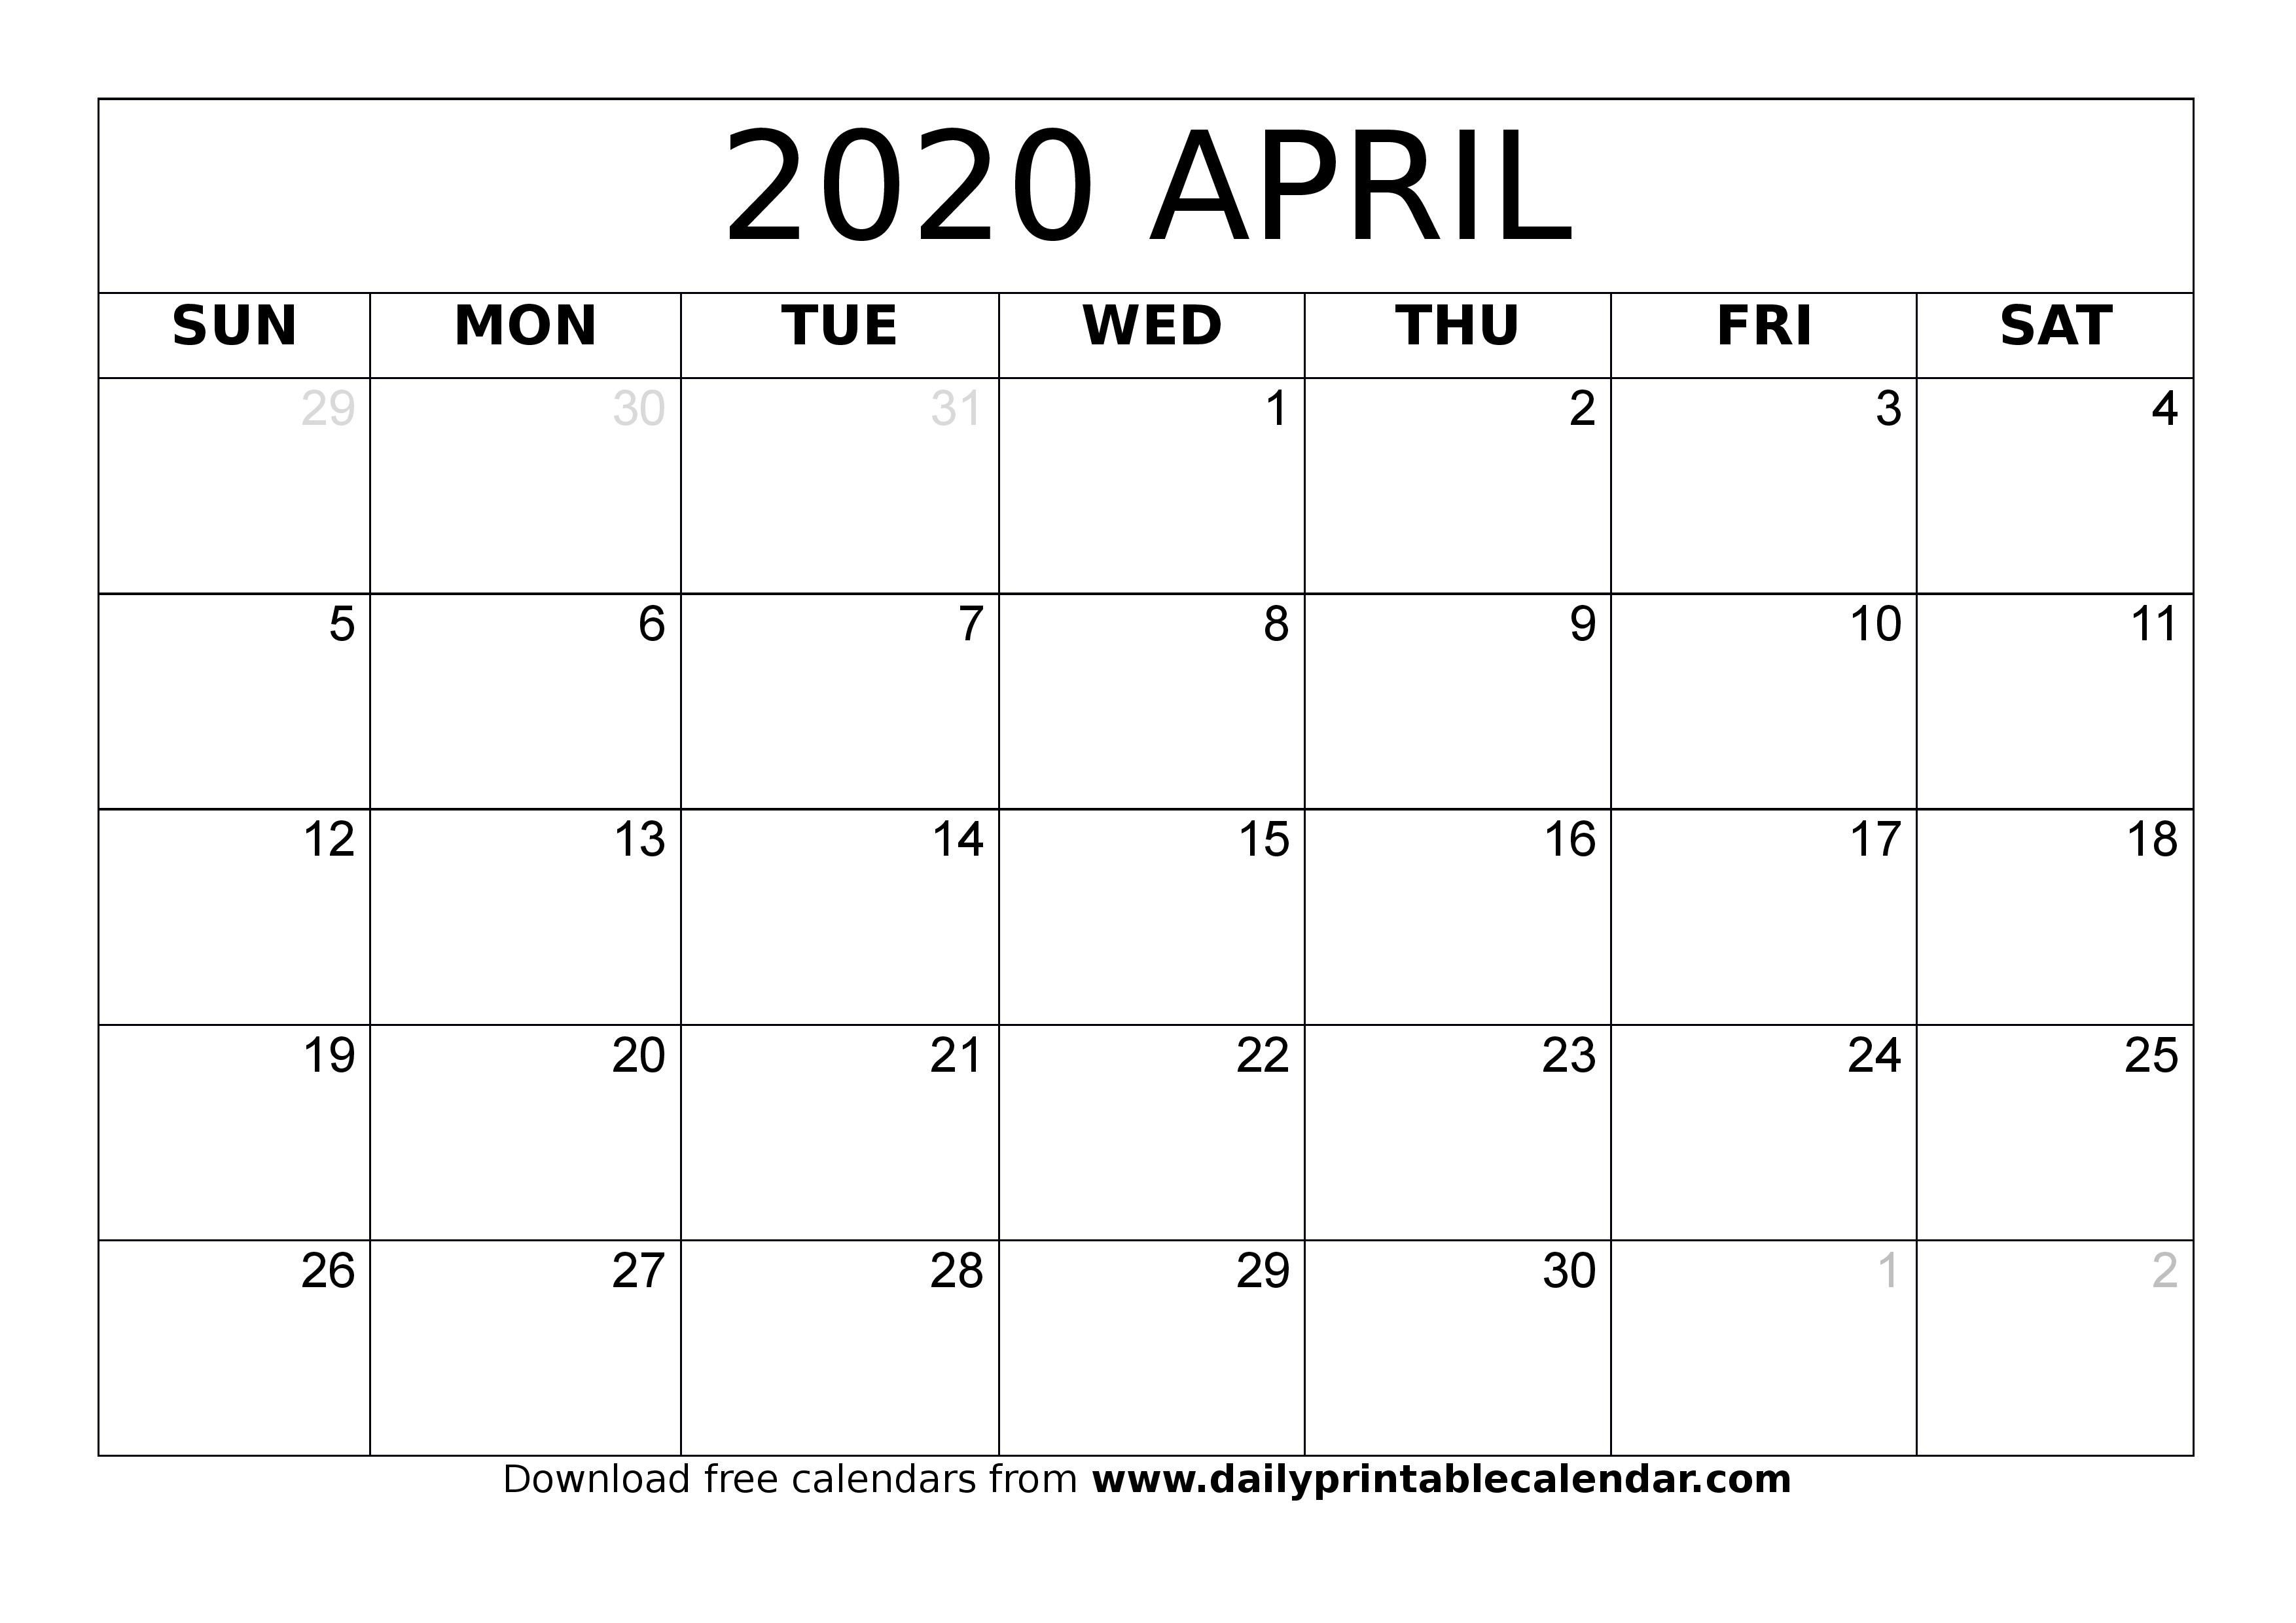 Free Calendar 2020 Templates ~ Addictionary throughout Free Editable 2020 Calendars